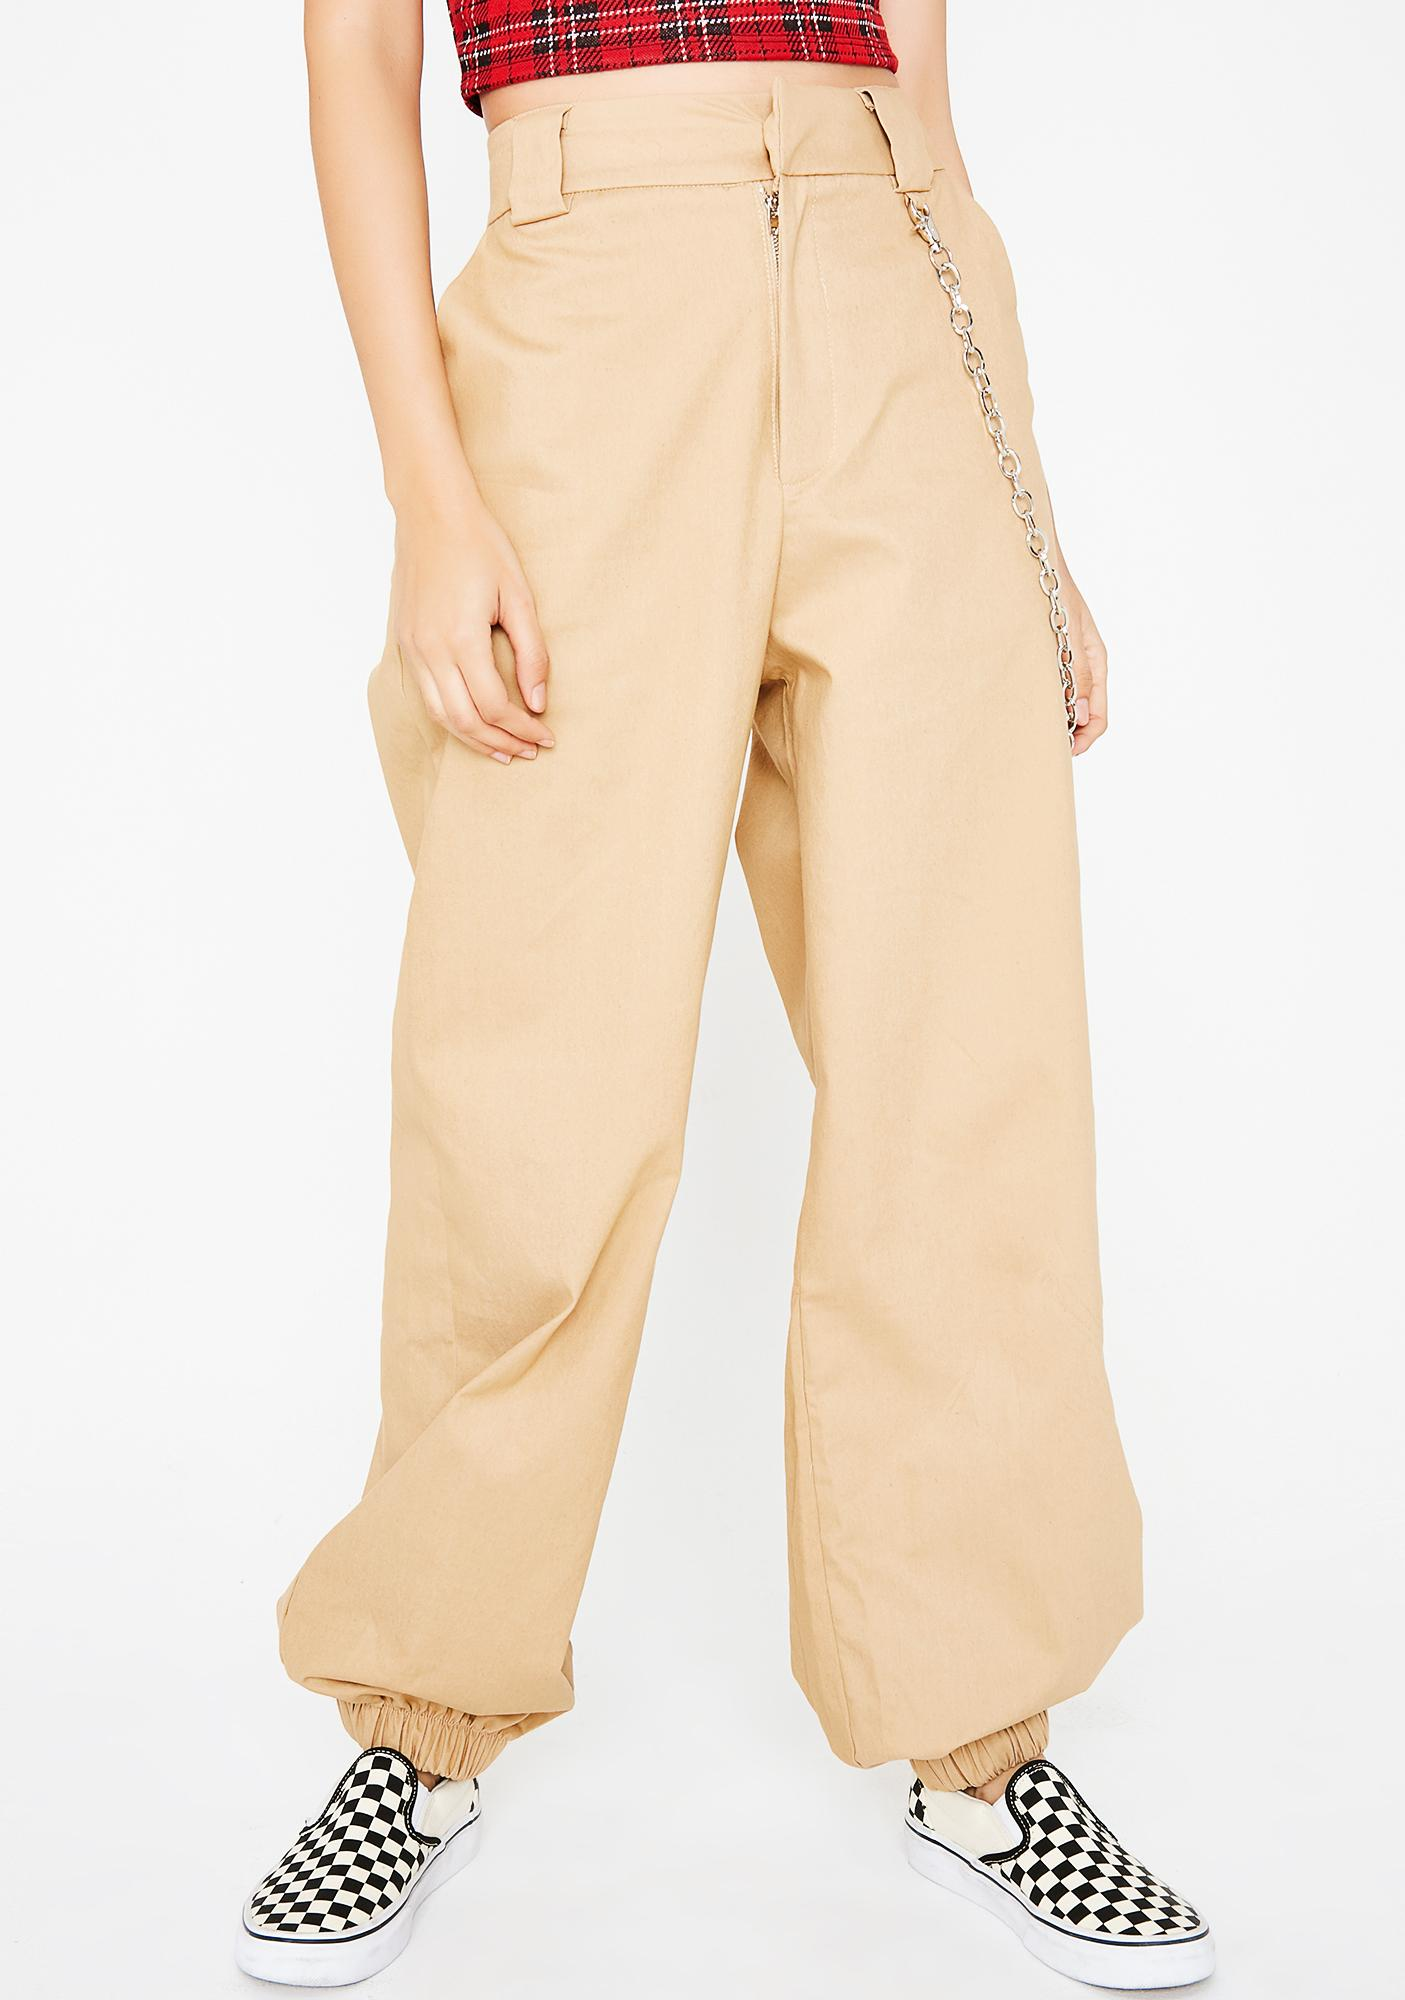 Sand Kim Probable Chain Pants